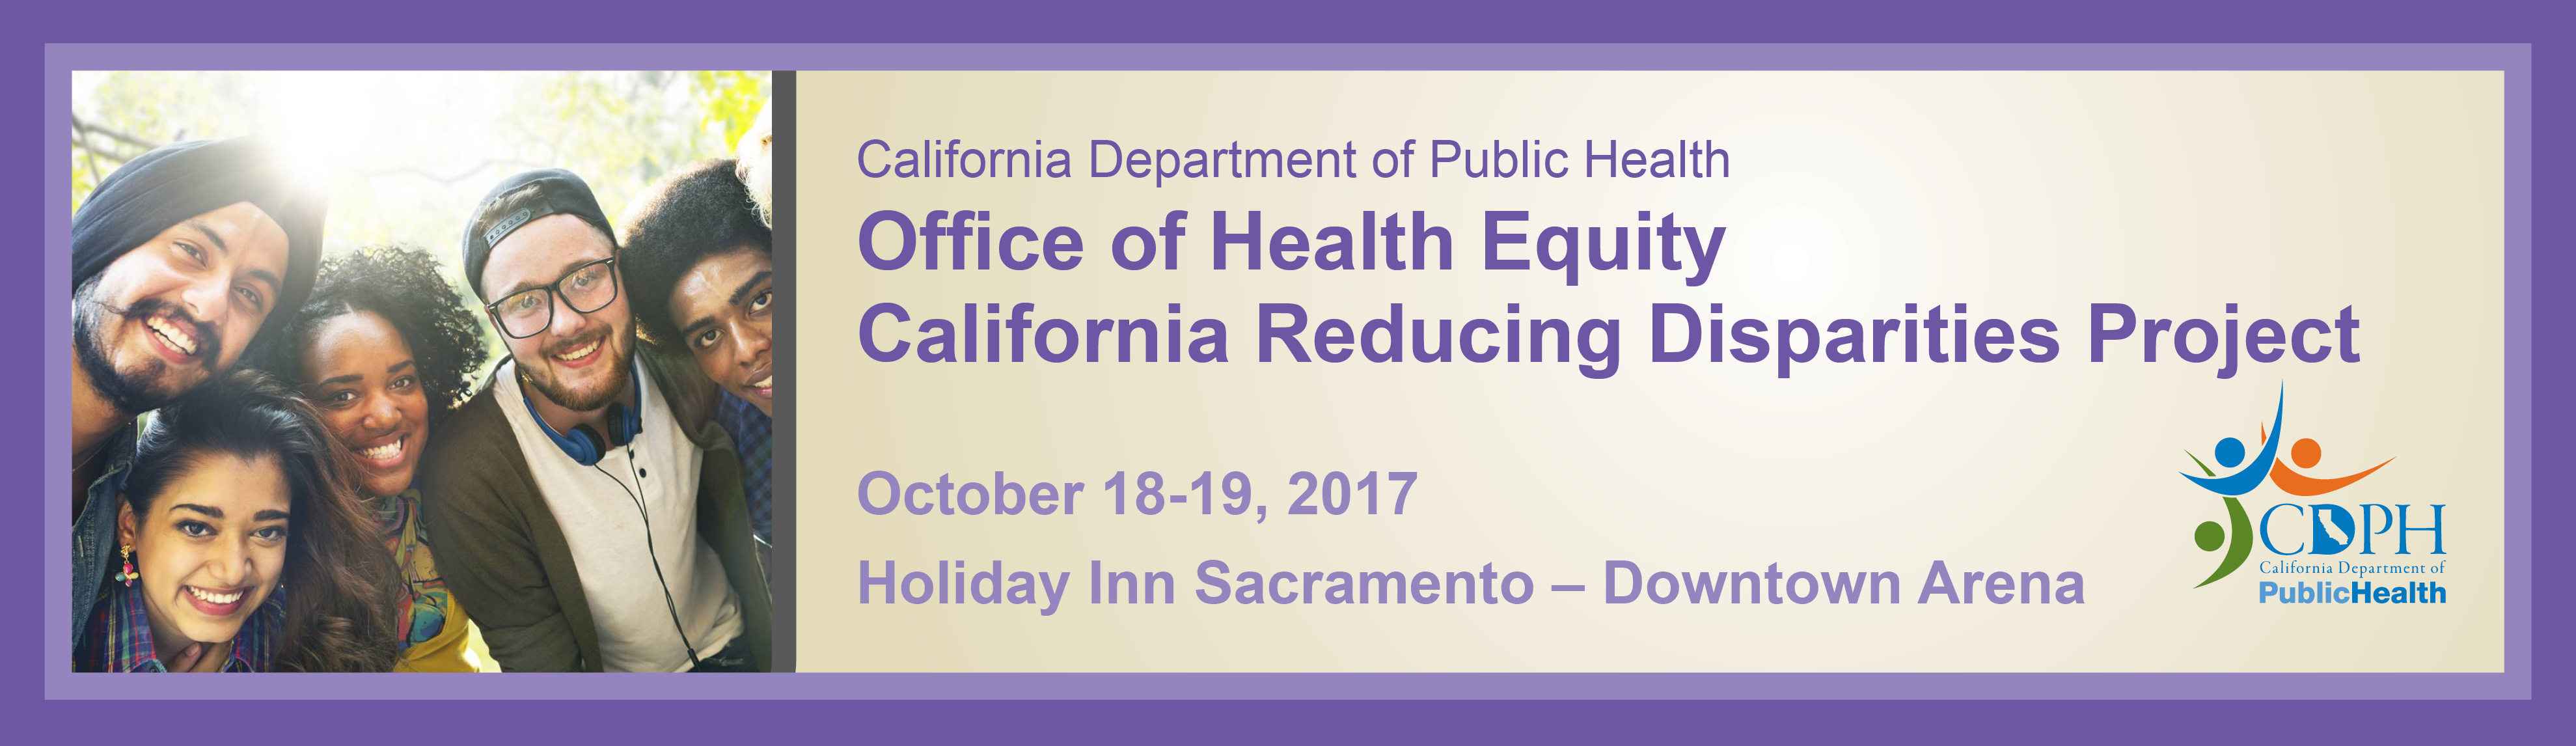 Office of Health Equity | California Reducing Disparities Project - October 2017